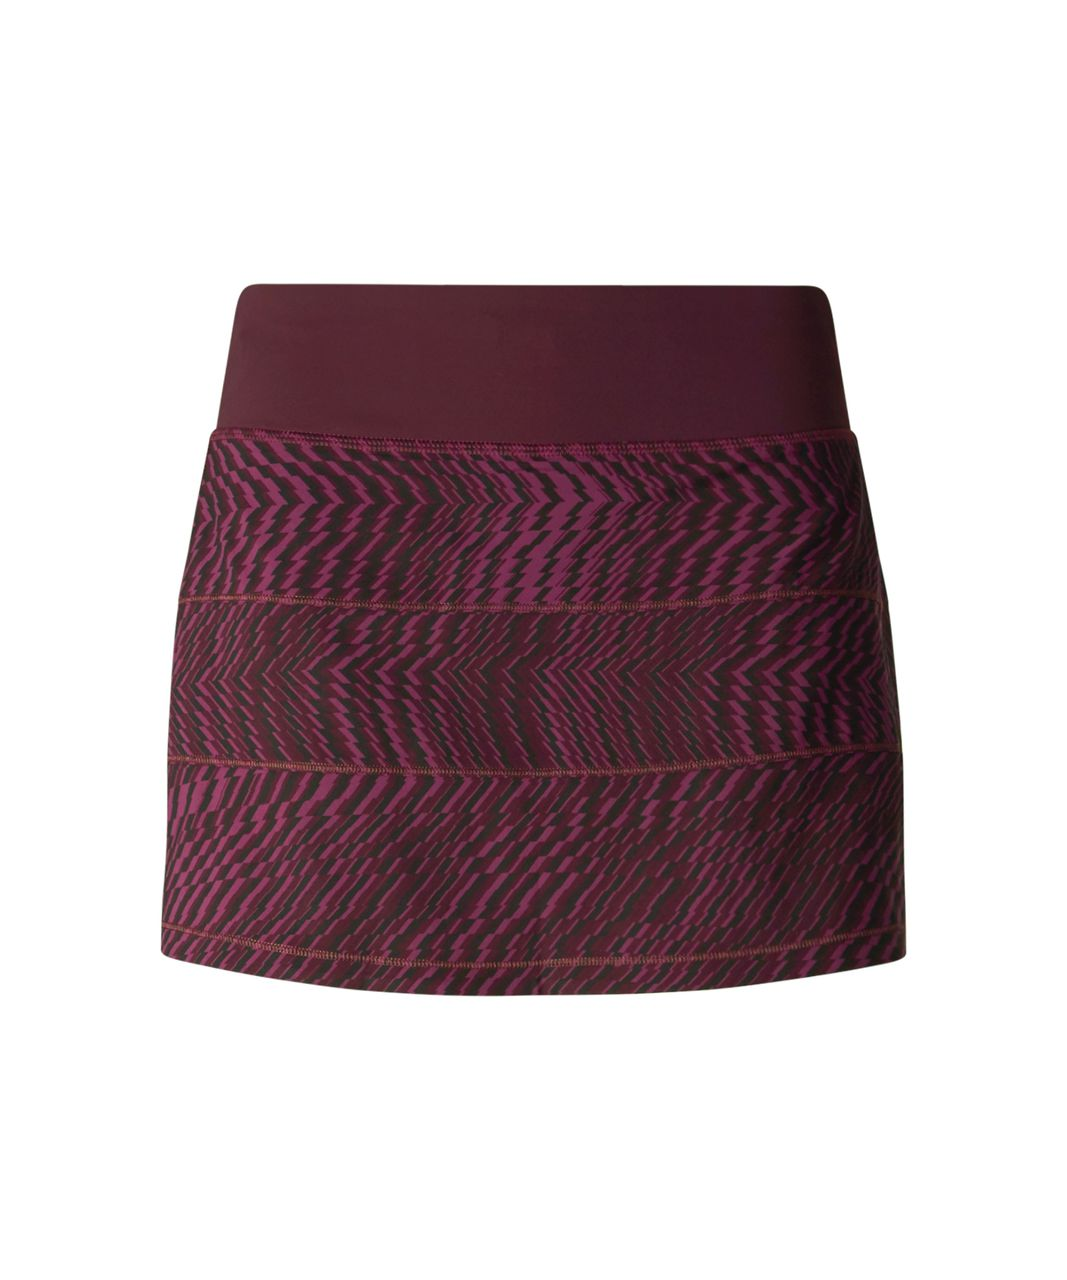 Lululemon Pace Rival Skirt II (Regular) - Shifted Horizon Red Grape Black / Bordeaux Drama